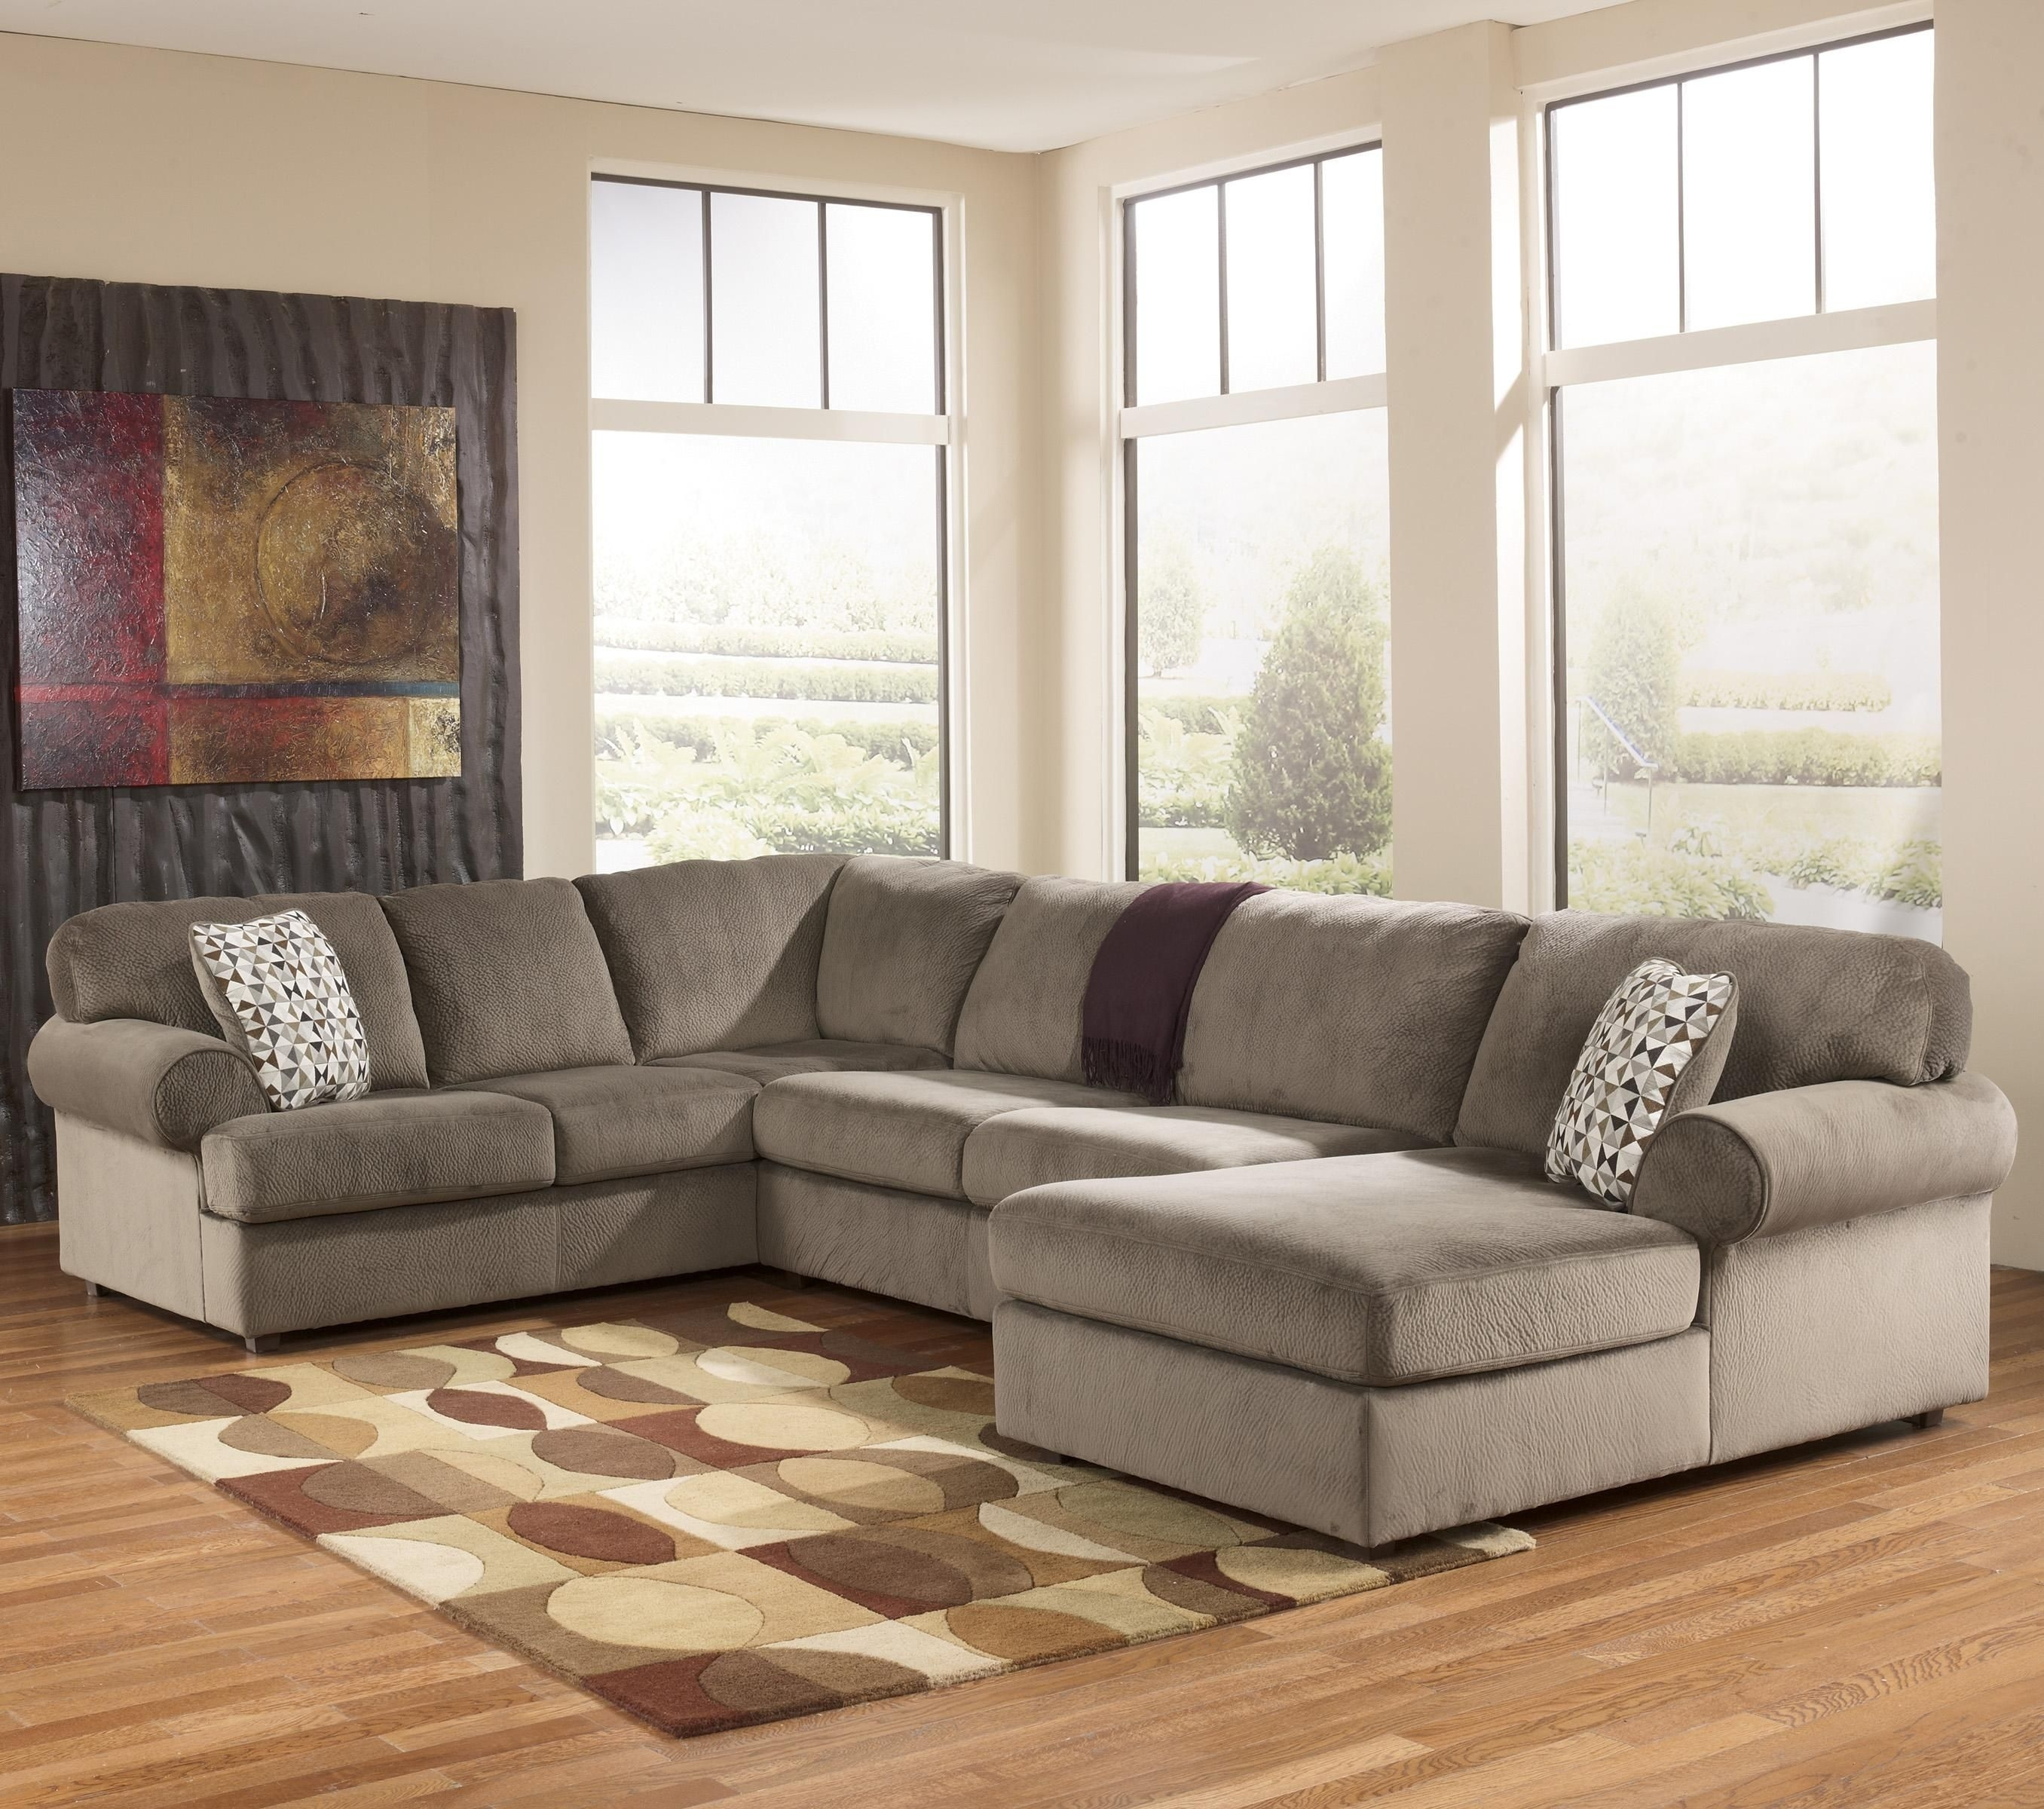 Jessa Place – Dune Casual Sectional Sofa With Right Chaise In Pensacola Fl Sectional Sofas (Image 8 of 10)